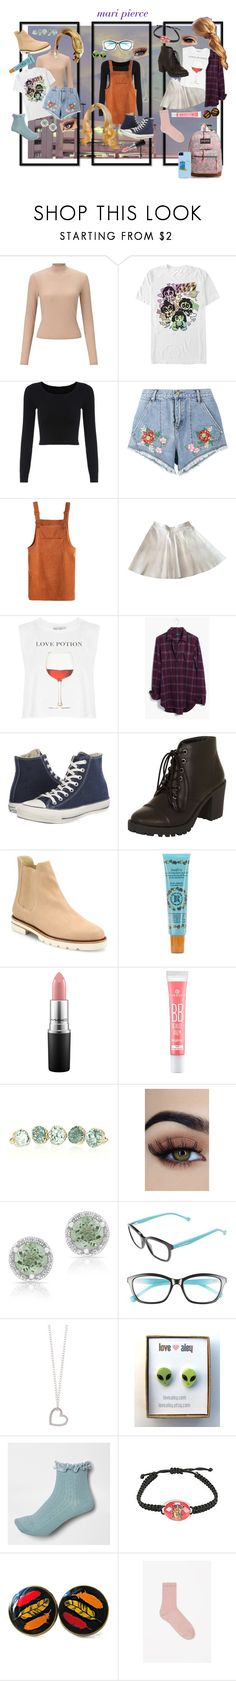 """mari pierce: campus"" by thewhoreofcookies ❤ liked on Polyvore featuring Miss Selfridge, Fifth Sun, House of Holland, American Apparel, Wildfox, Madewell, Converse, Dorothy Perkins, Stuart Weitzman and Smith's"